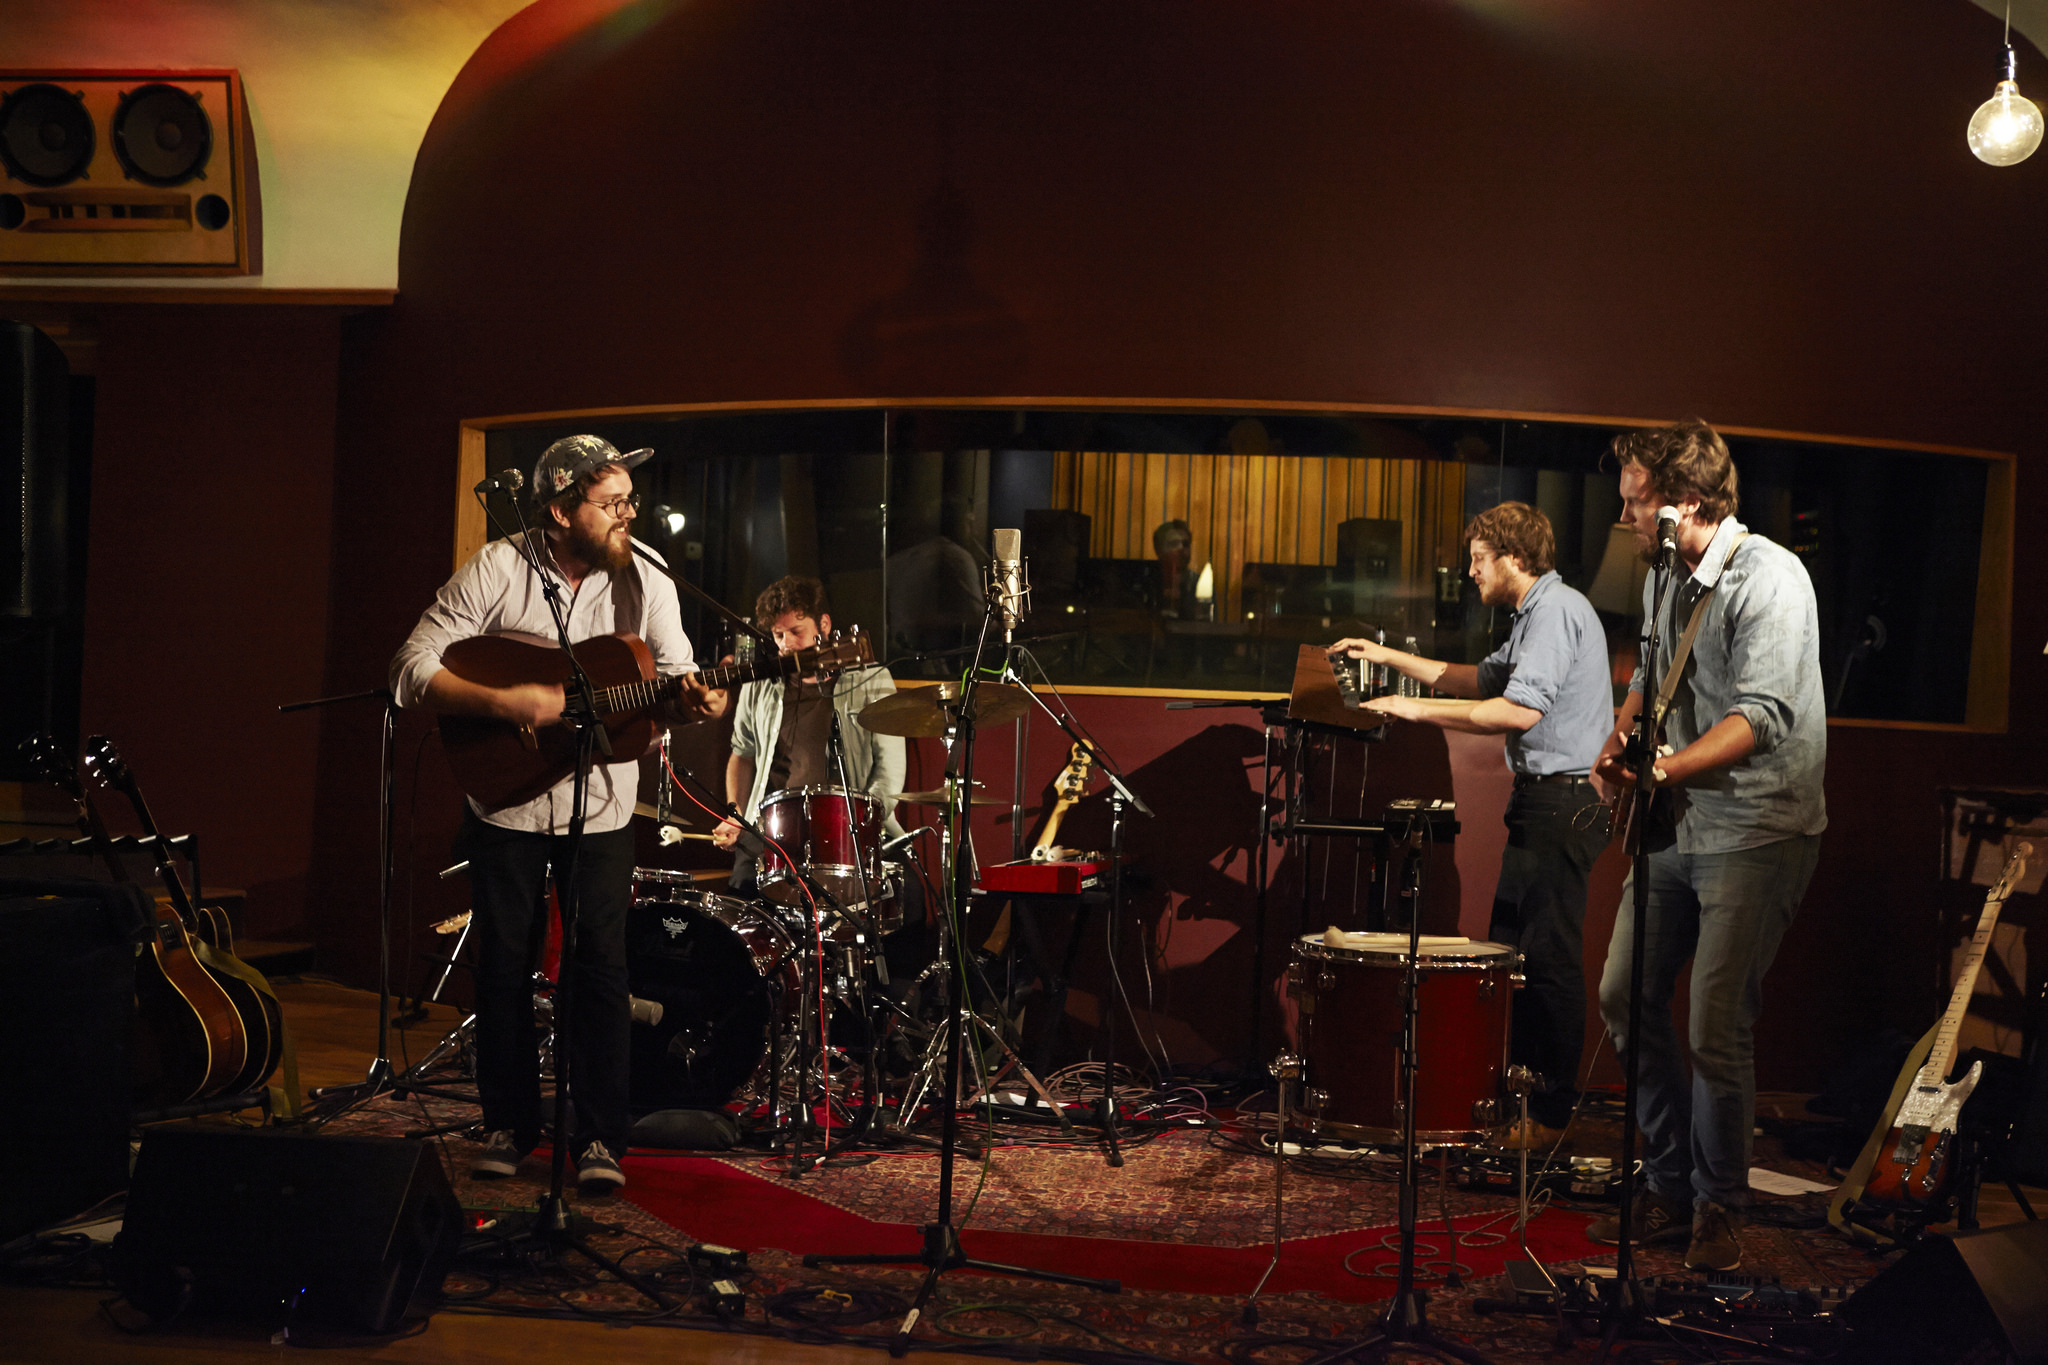 Hear an FUV Live concert with Bear's Den tonight at 9.